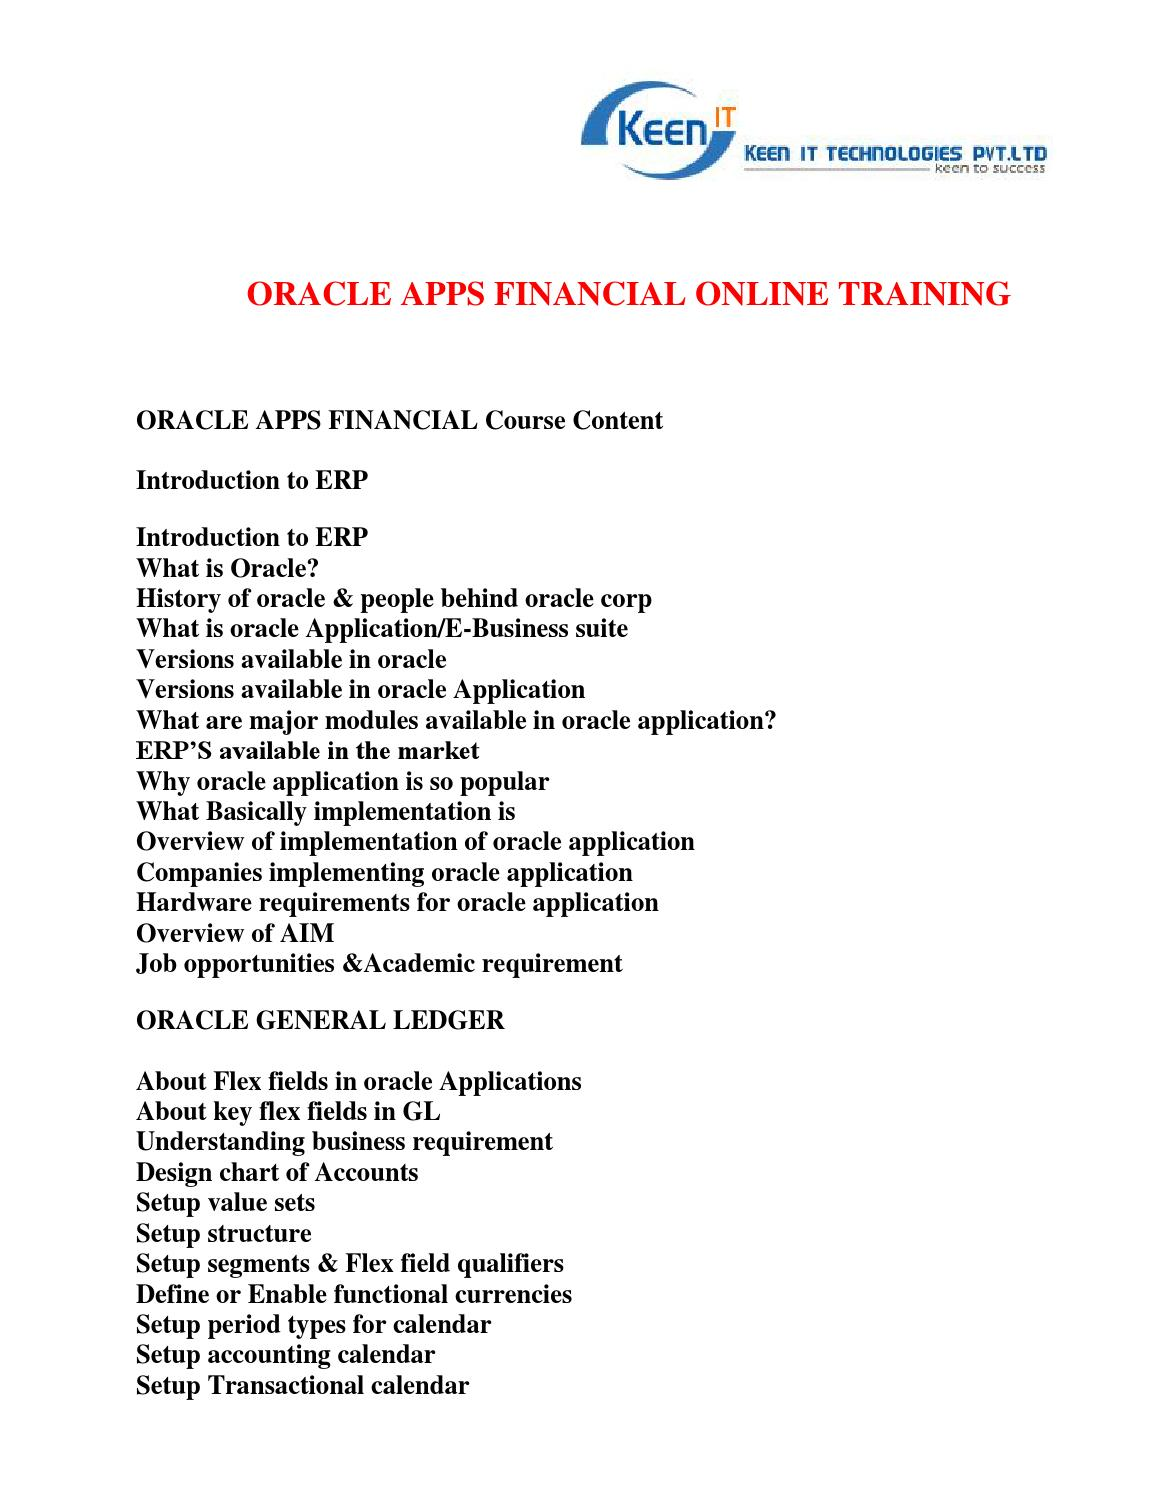 Oracle apps financial online training by keentrainings issuu for Oracle cc b architecture